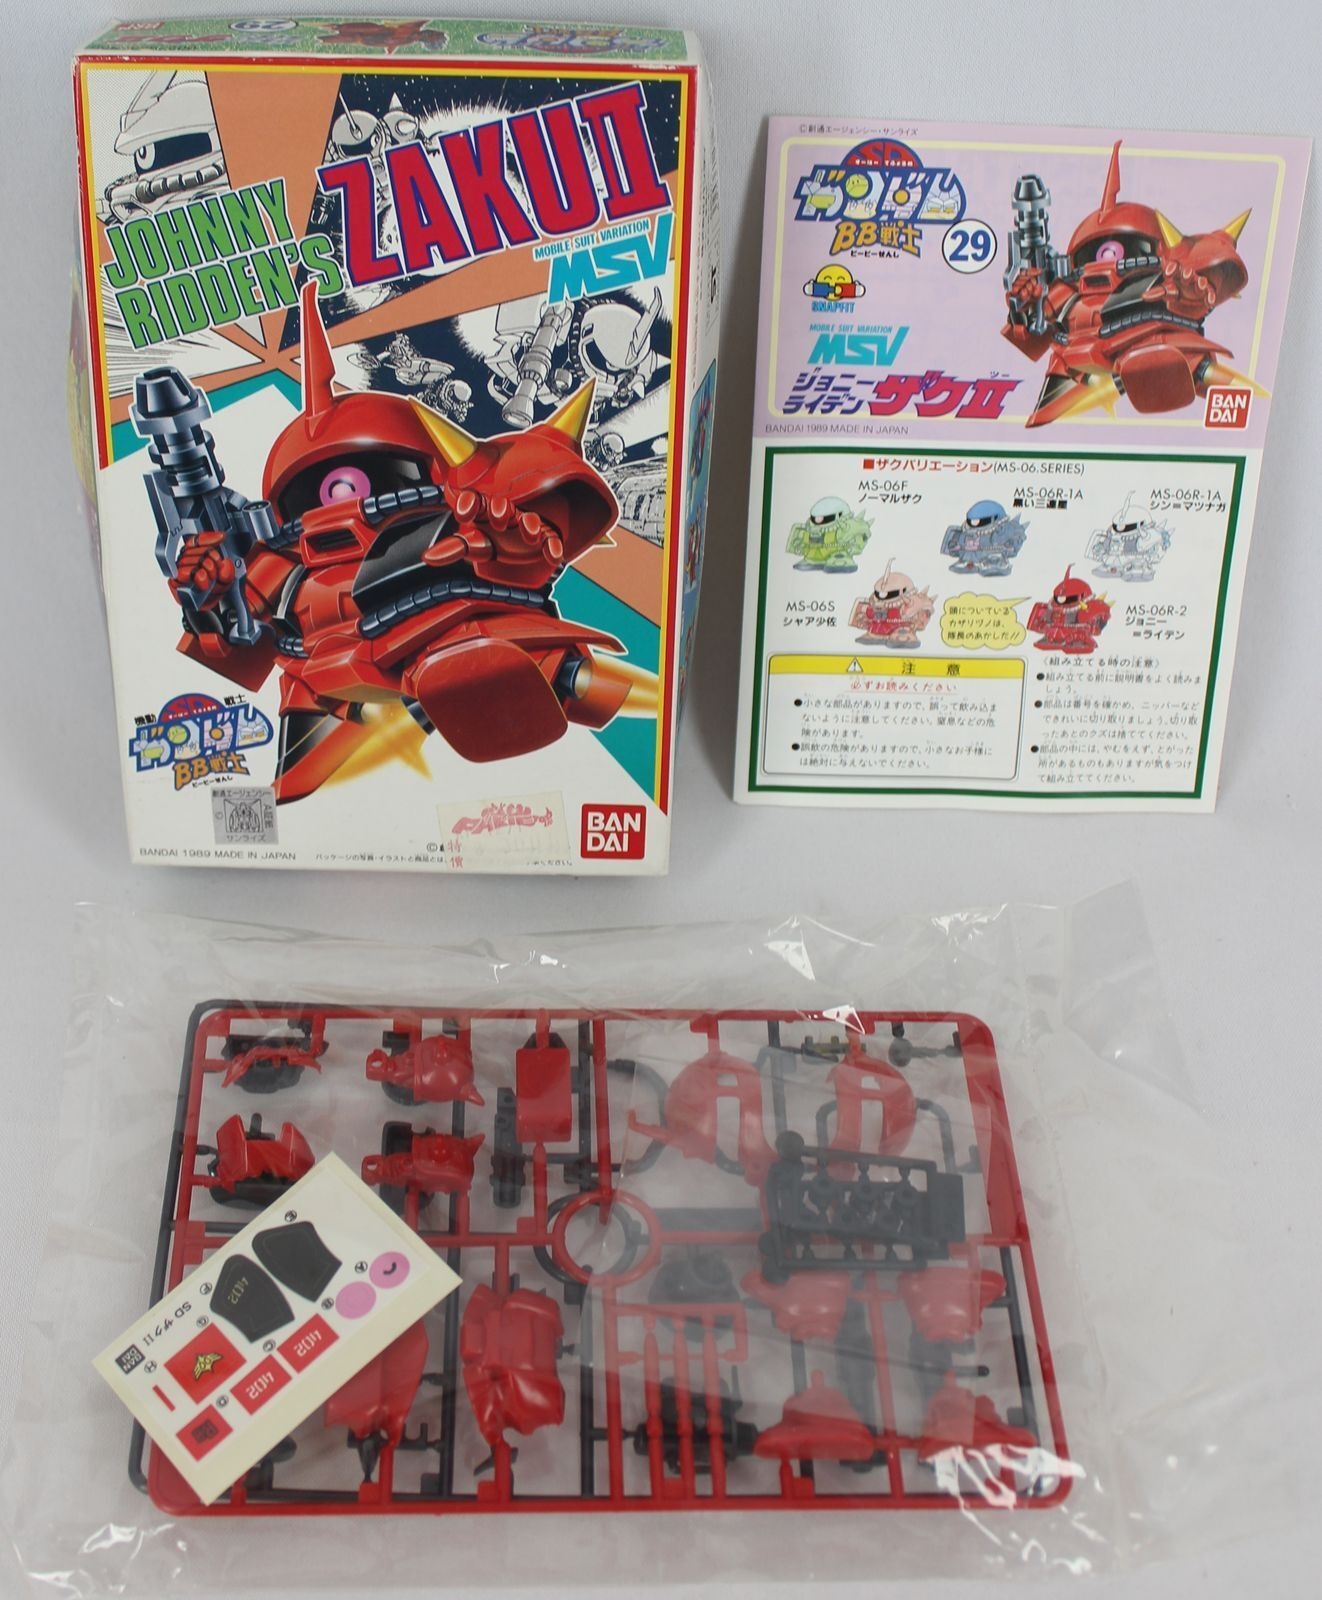 BANDAI 1989 27823-300 No. 29 Johnny Ridden's Zaku II MSV OPEN BOX - NEW